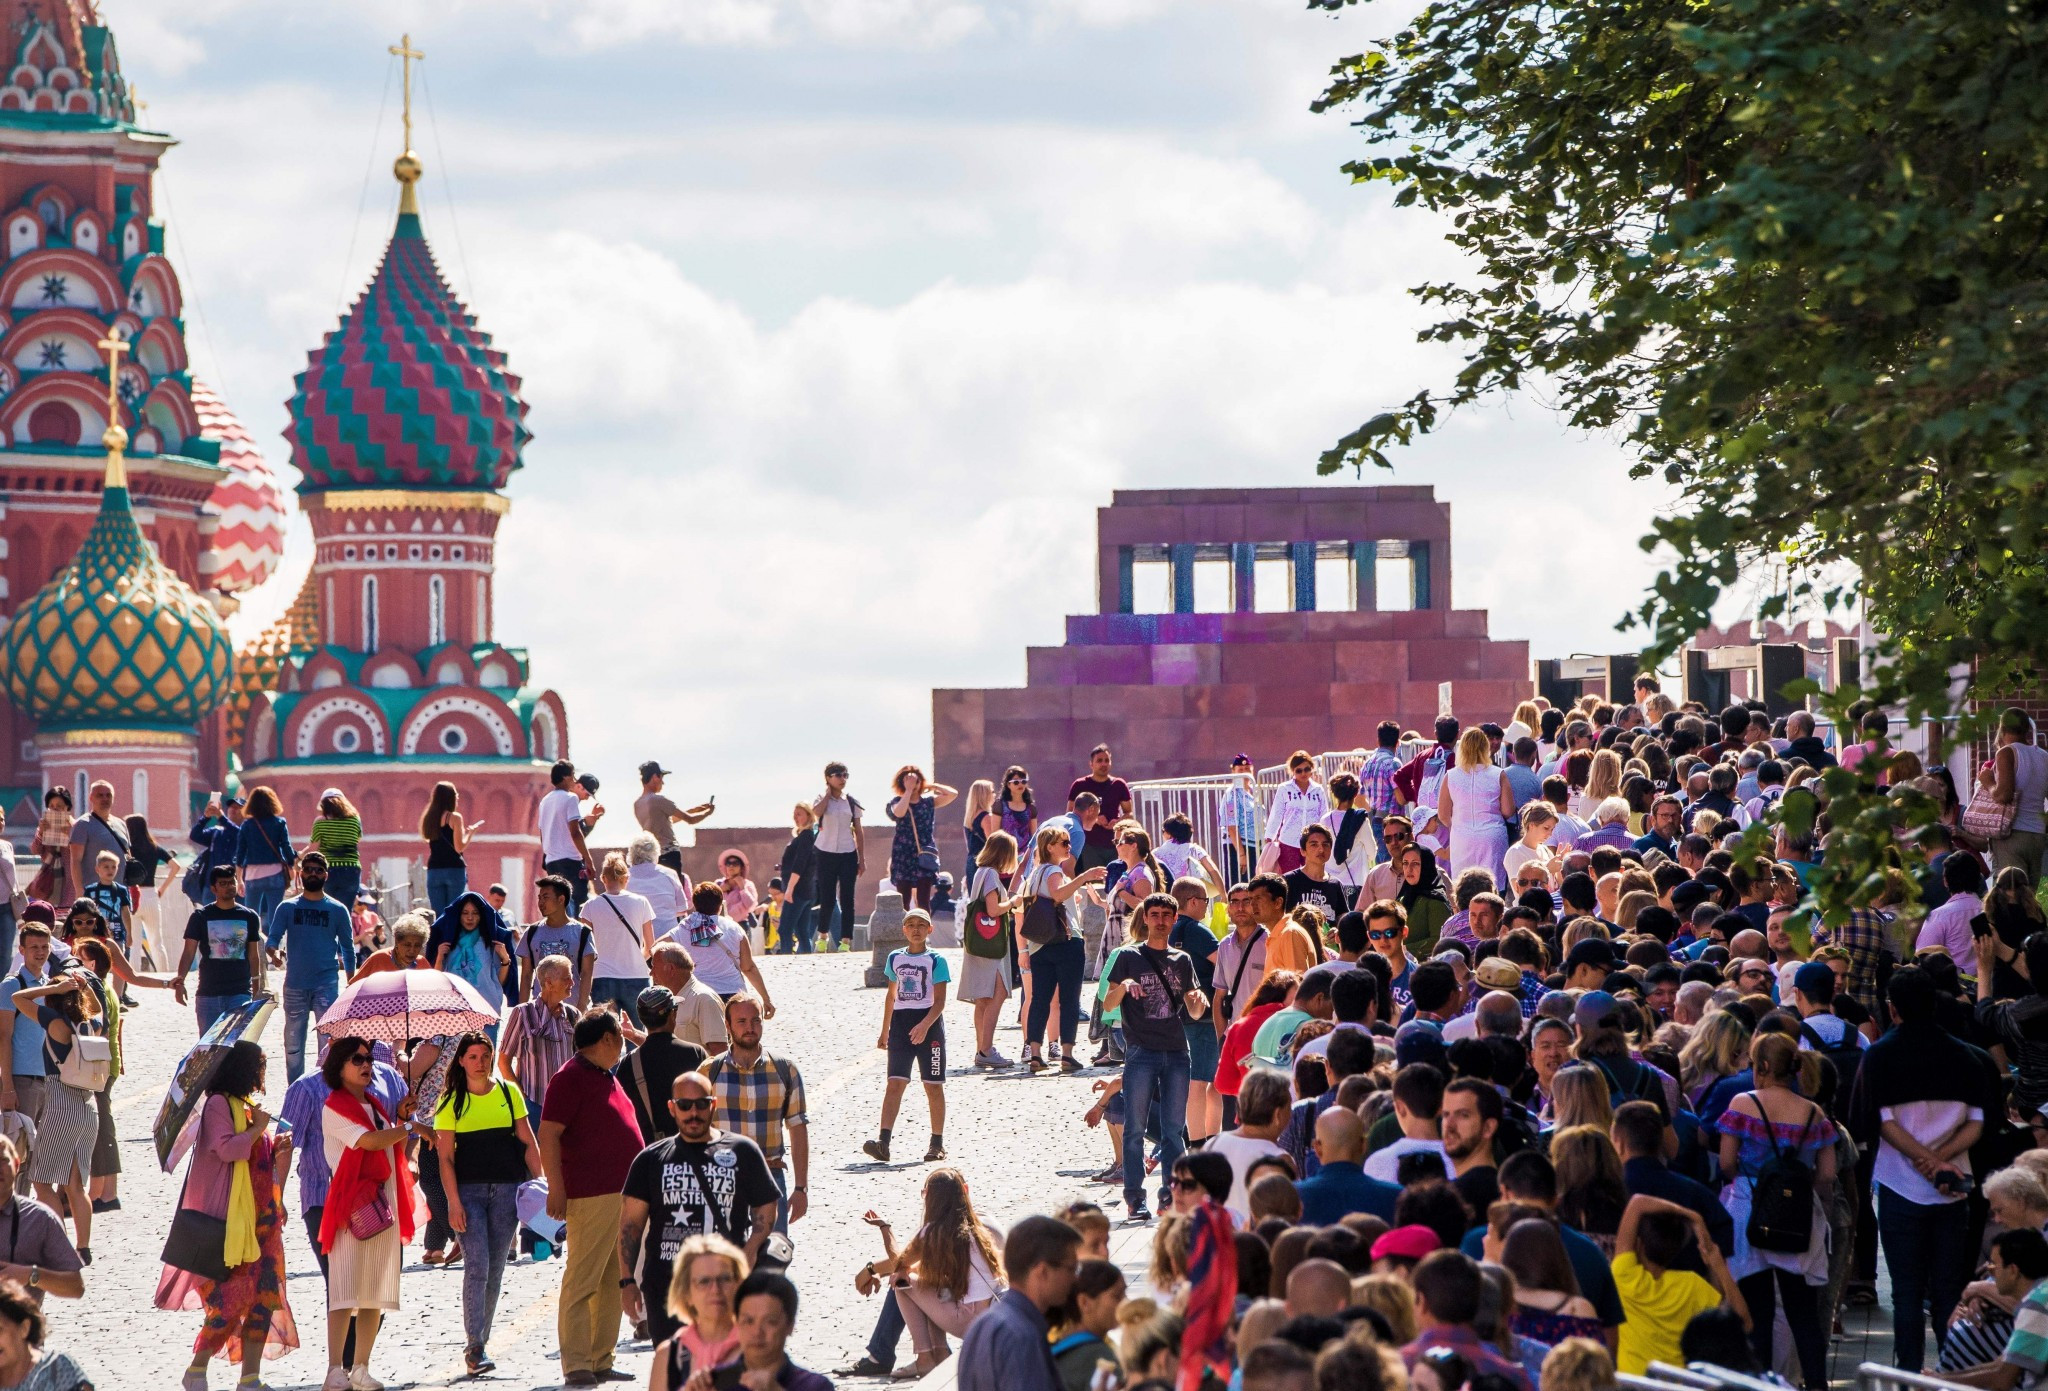 Fans offered Russia 2018 World Cup advice in London